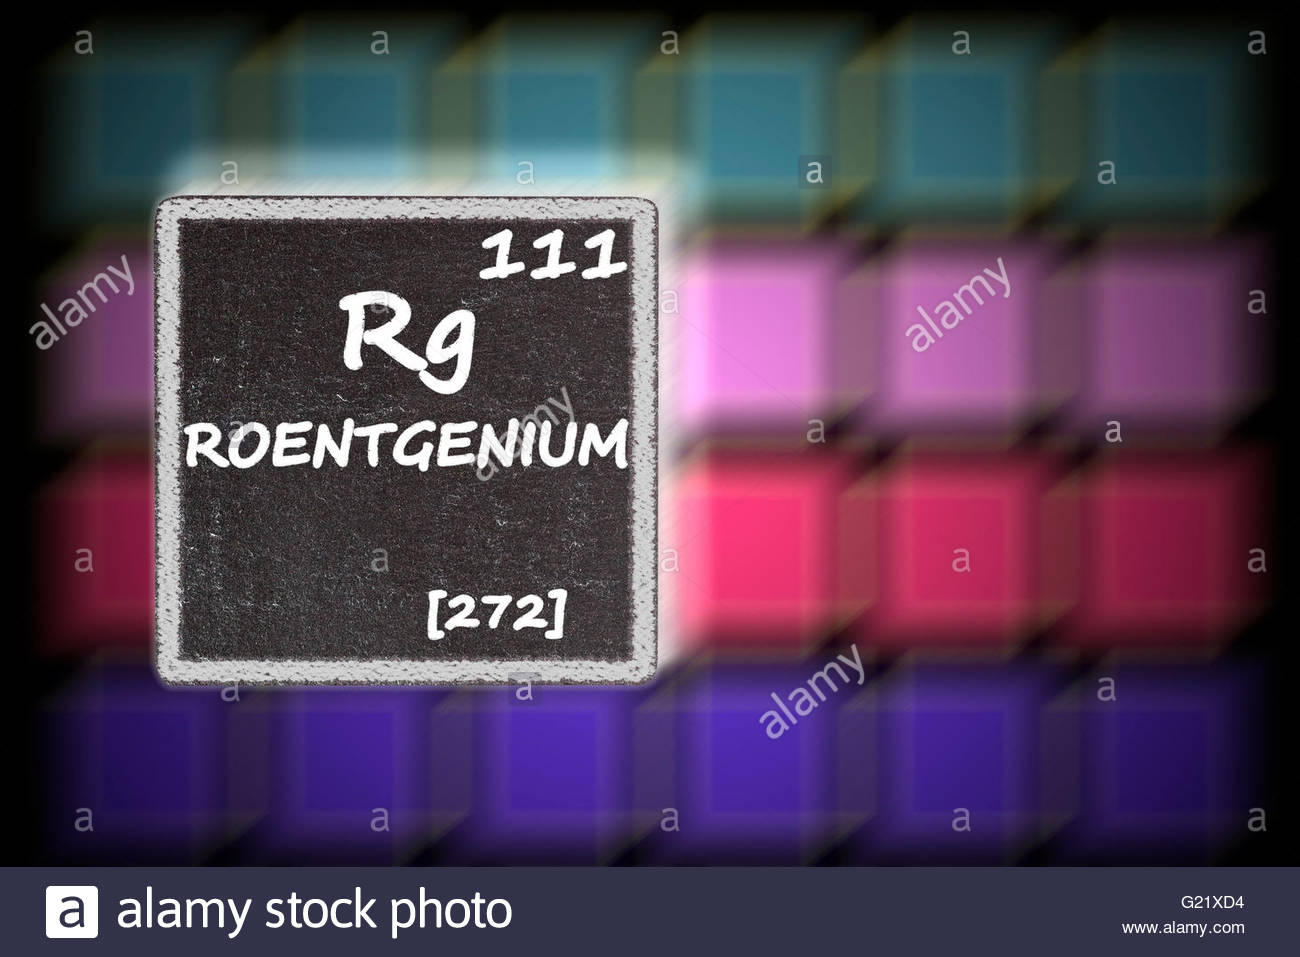 Atomic number 111 stock photos atomic number 111 stock images alamy roentgenium details from the periodic table stock image urtaz Gallery